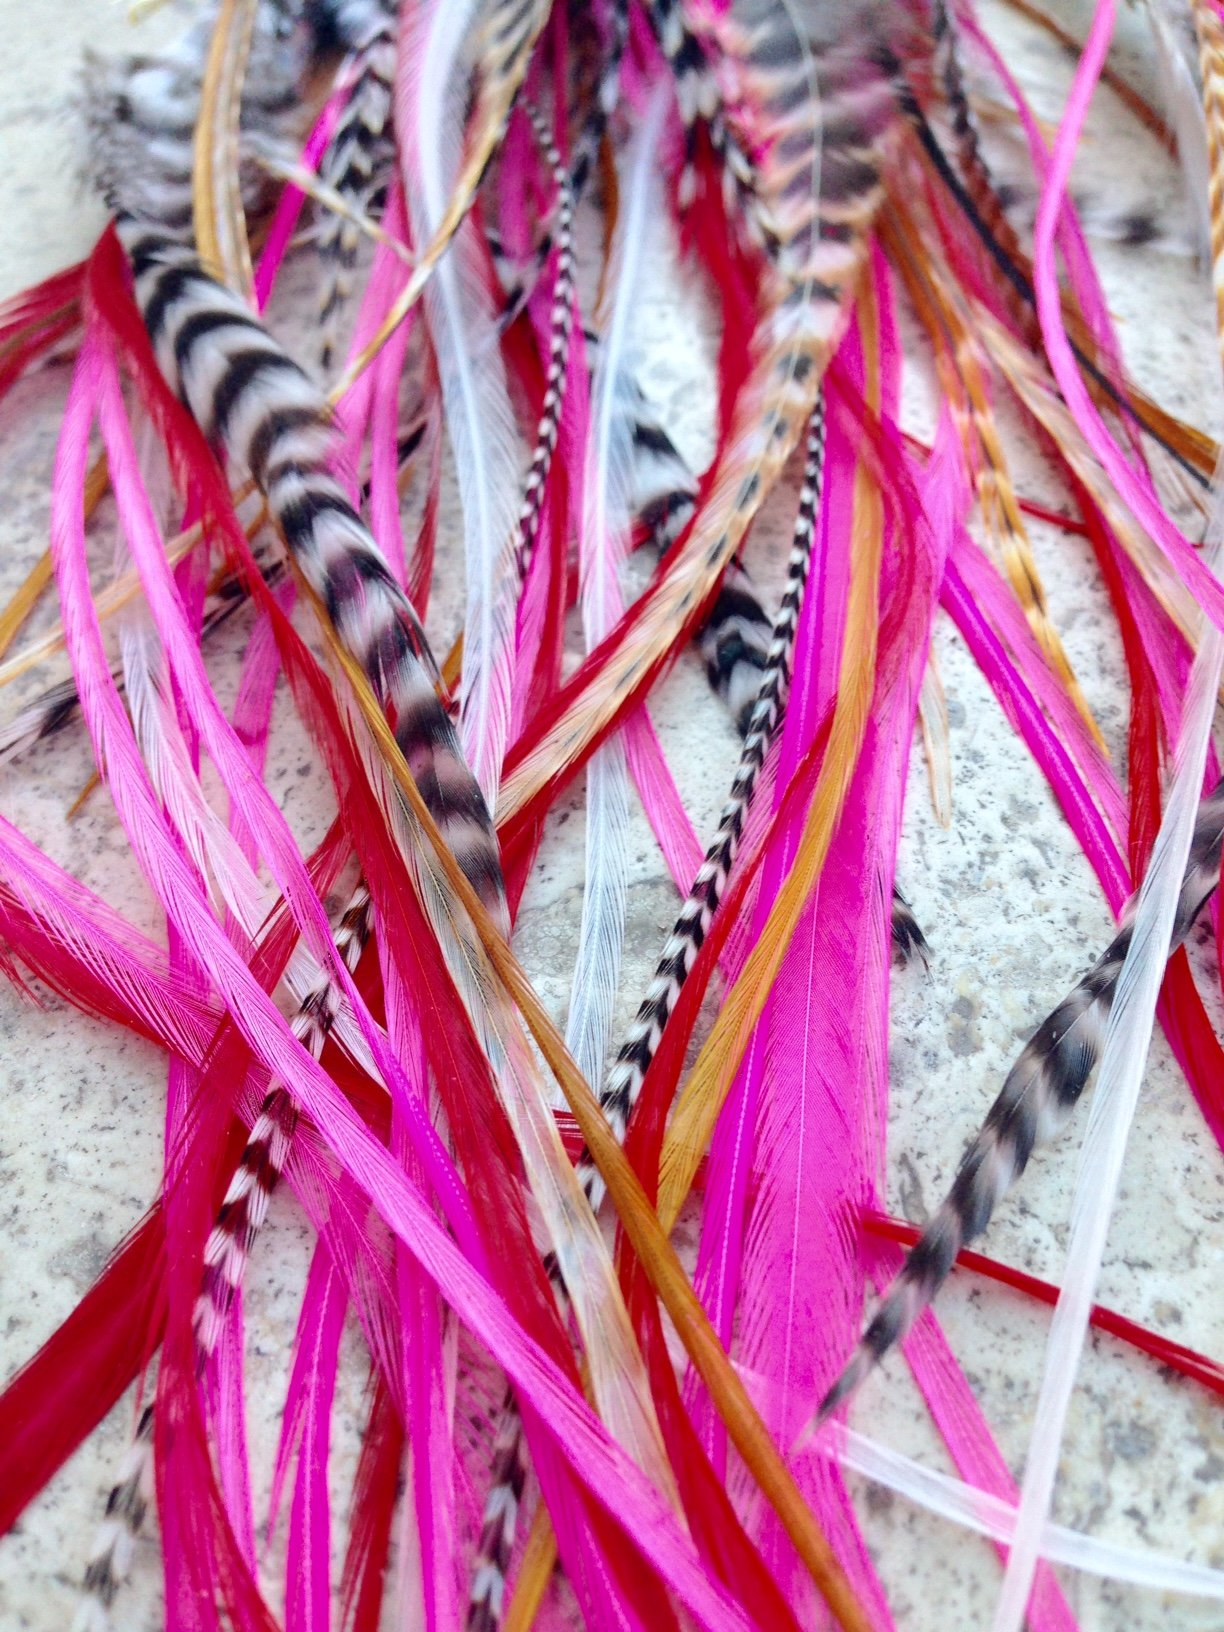 ''Pinky'' Bohemian Feather Hair Extensions. 13 Pcs. Kit. Beautiful 100% real feathers